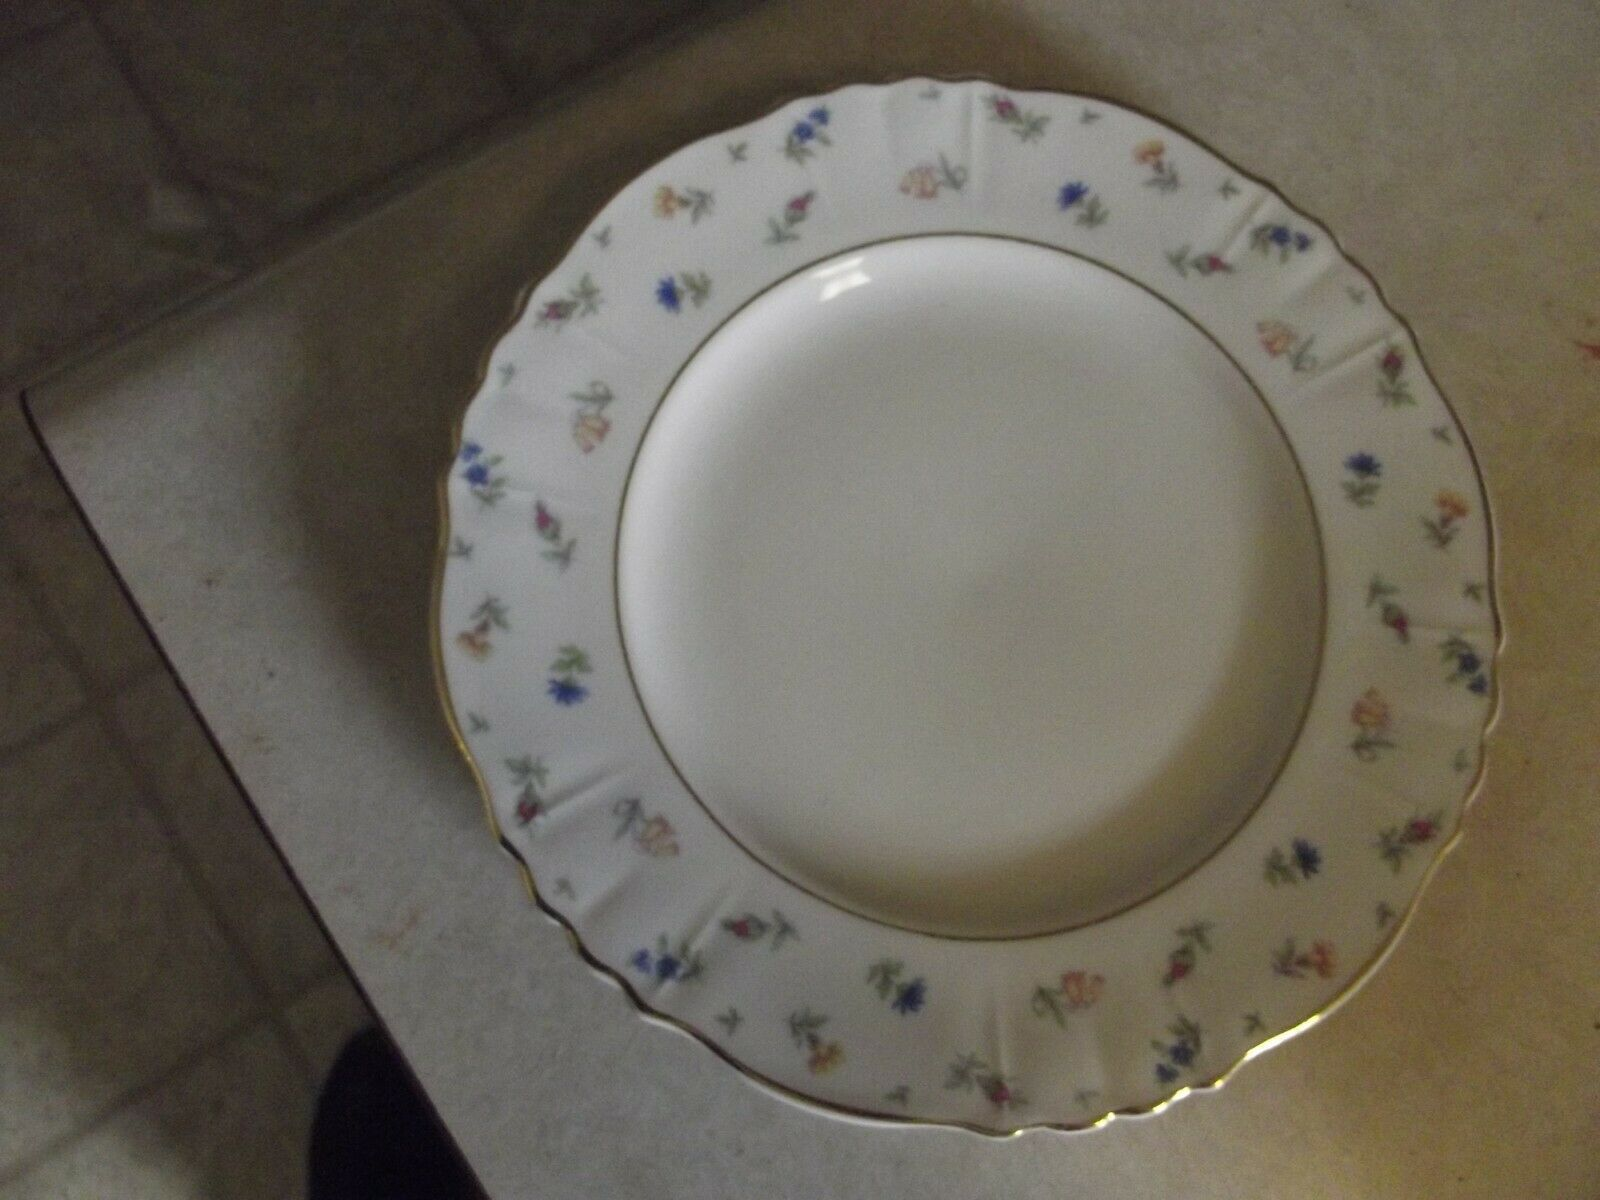 Syarcuse salad plate (Suzanne) 7 available - $8.17